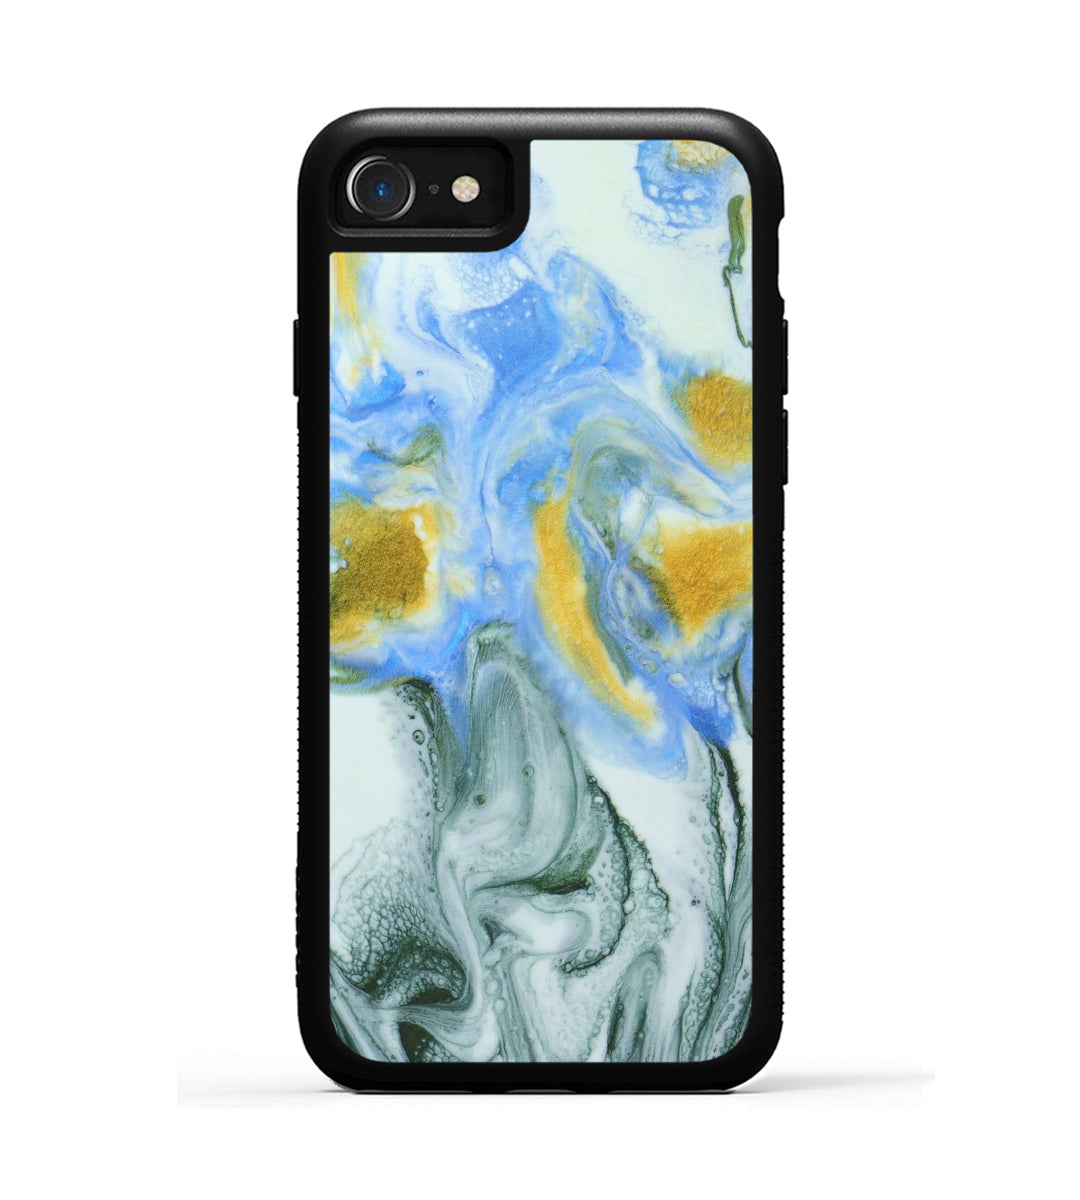 iPhone 8 Case - Dewi (Teal & Gold, 346024)